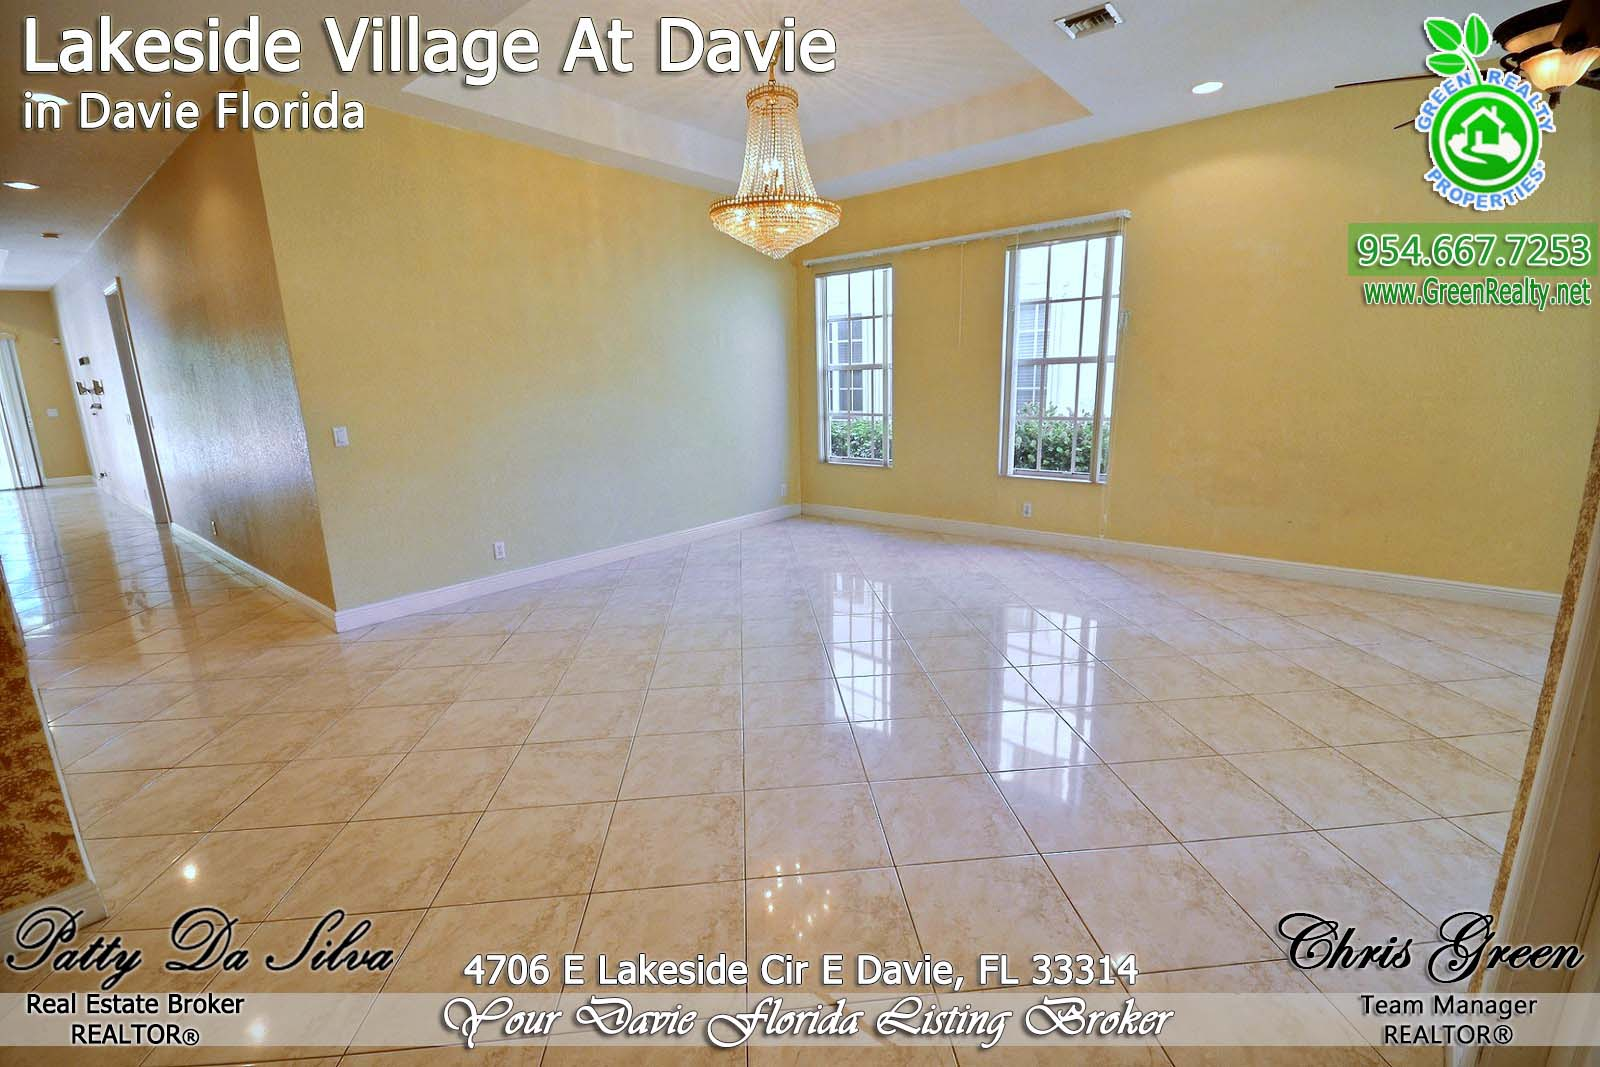 5 Davie Real Estate - Agents - REALTORS (2)